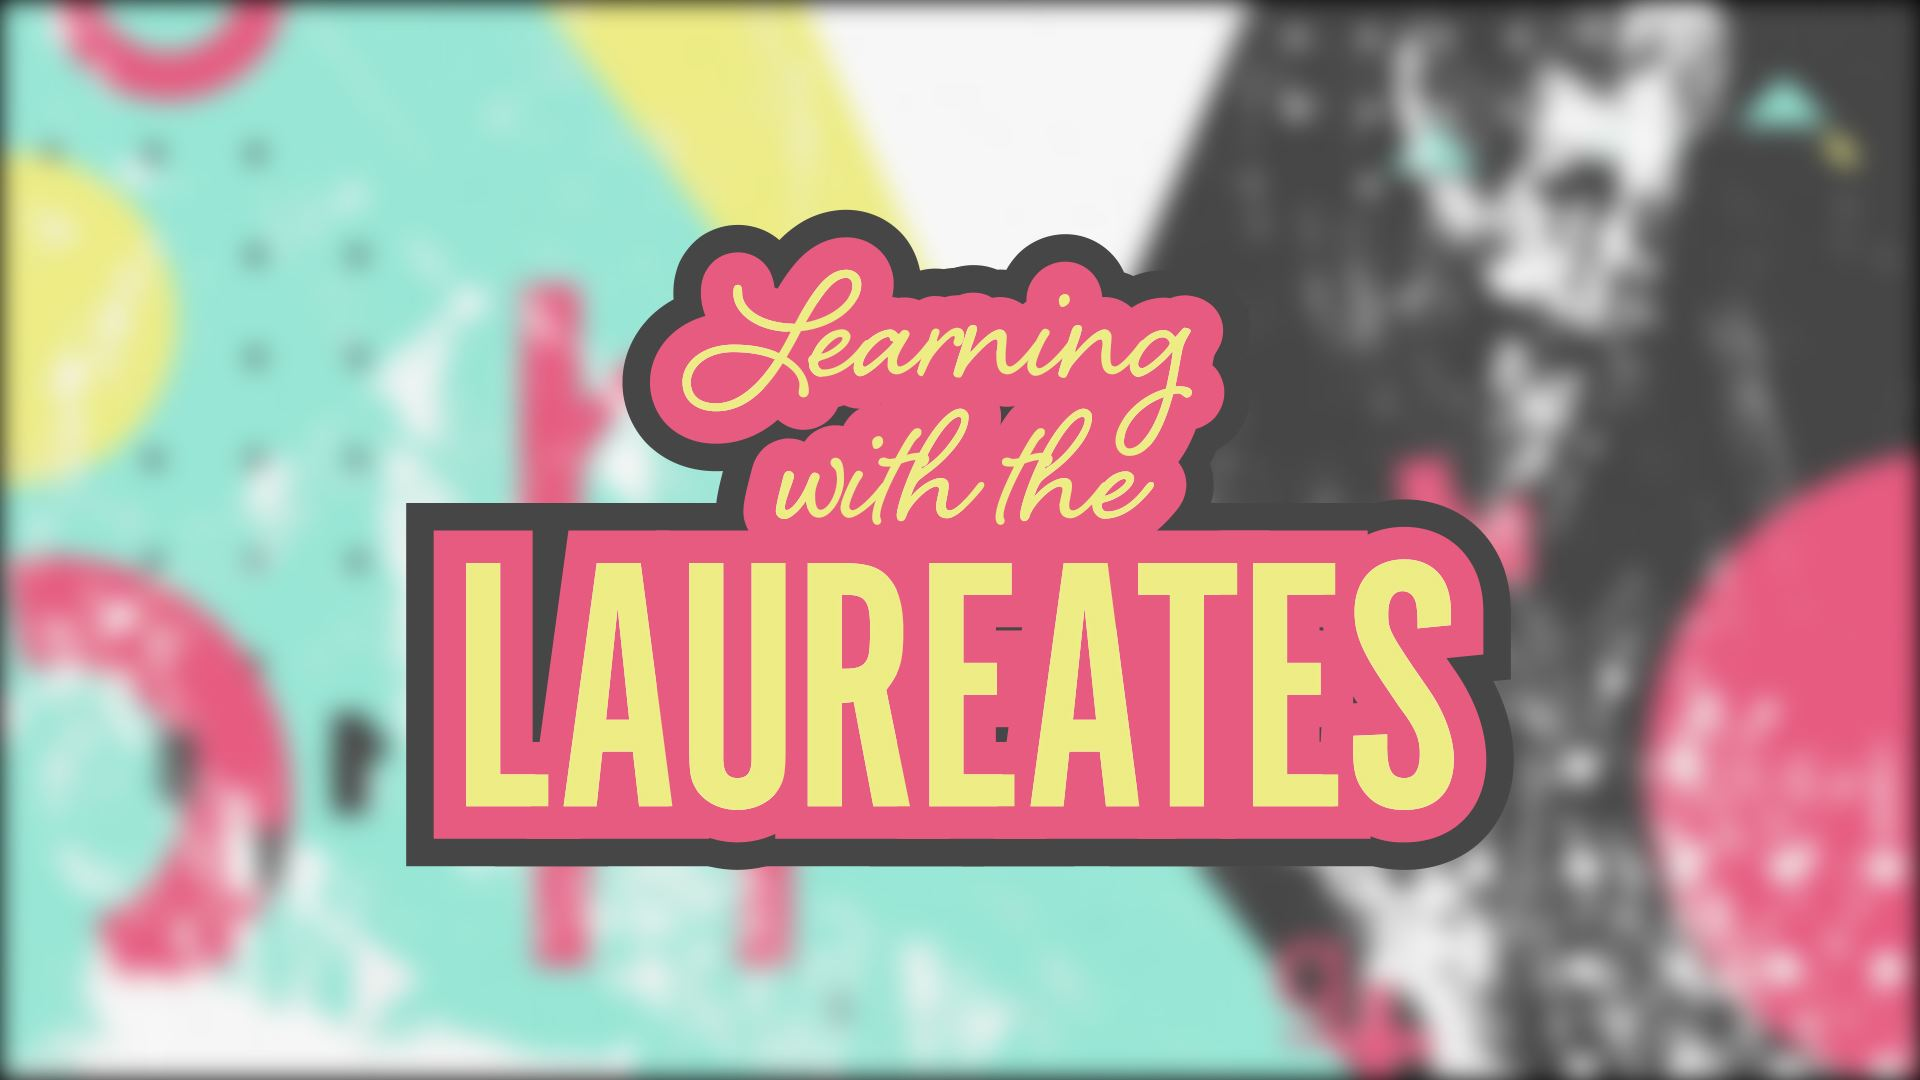 Learning with the Laureates